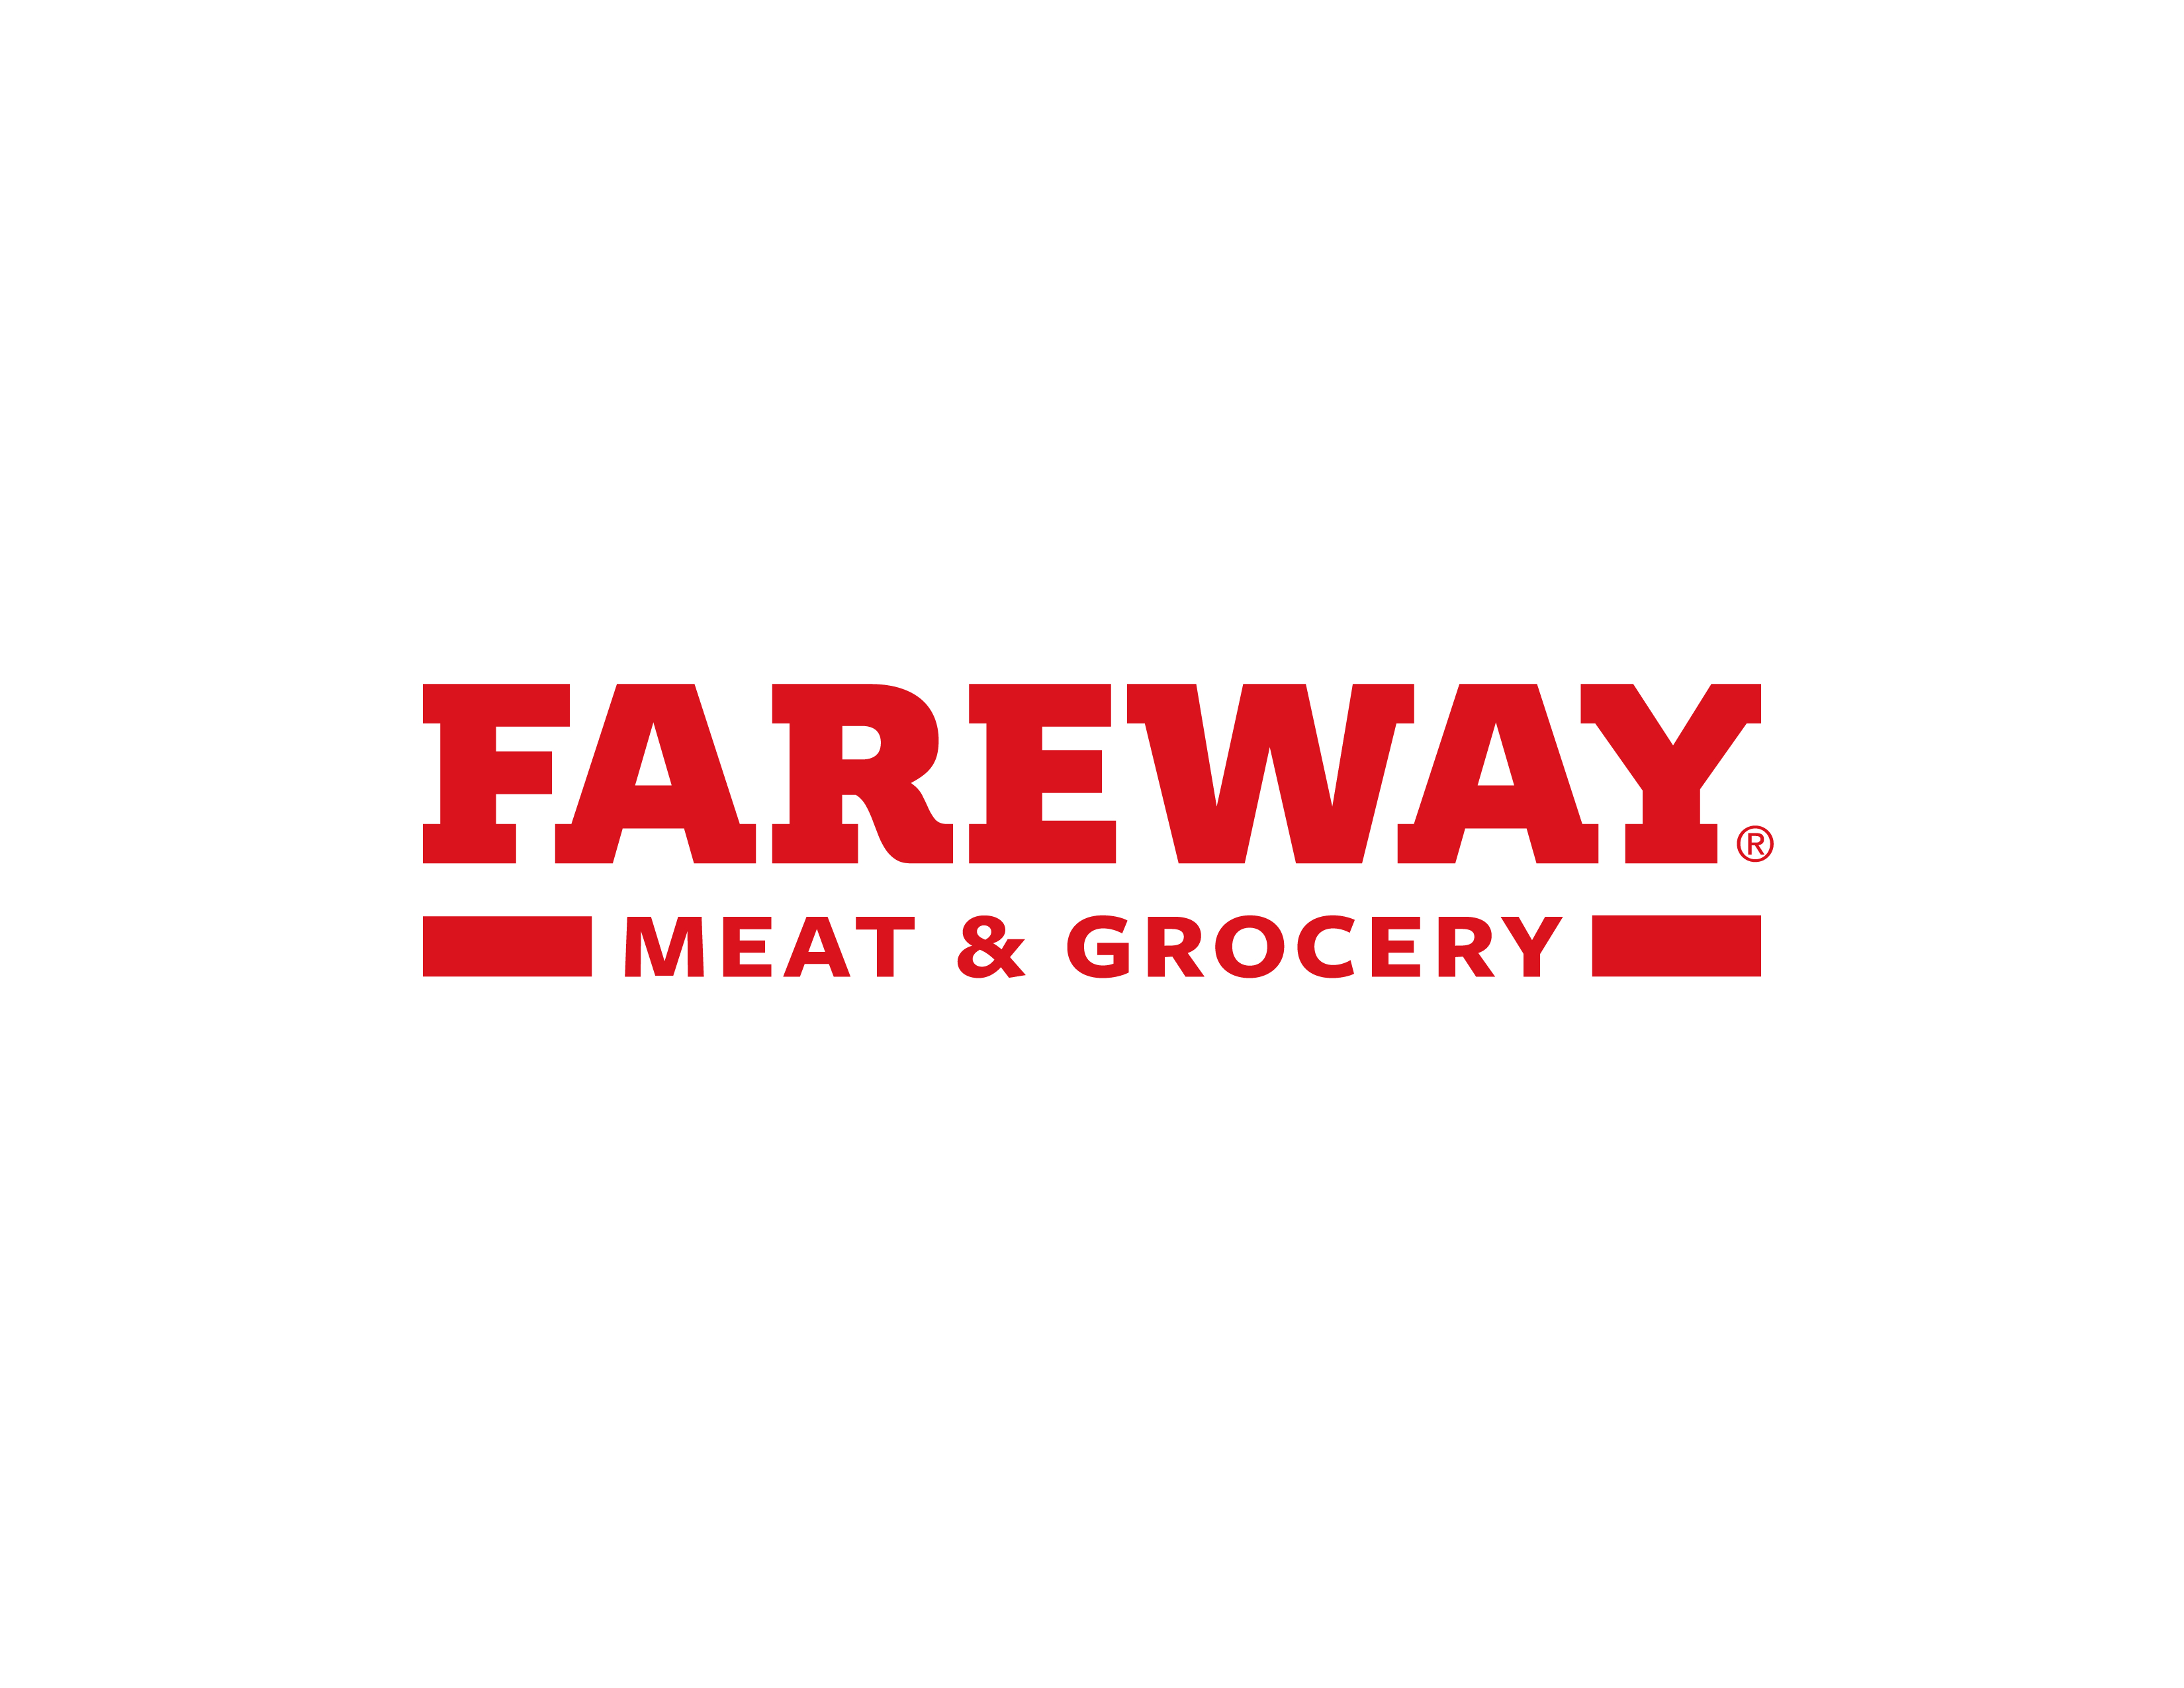 News Fareway Launches New Logos In Conjunction With 80th